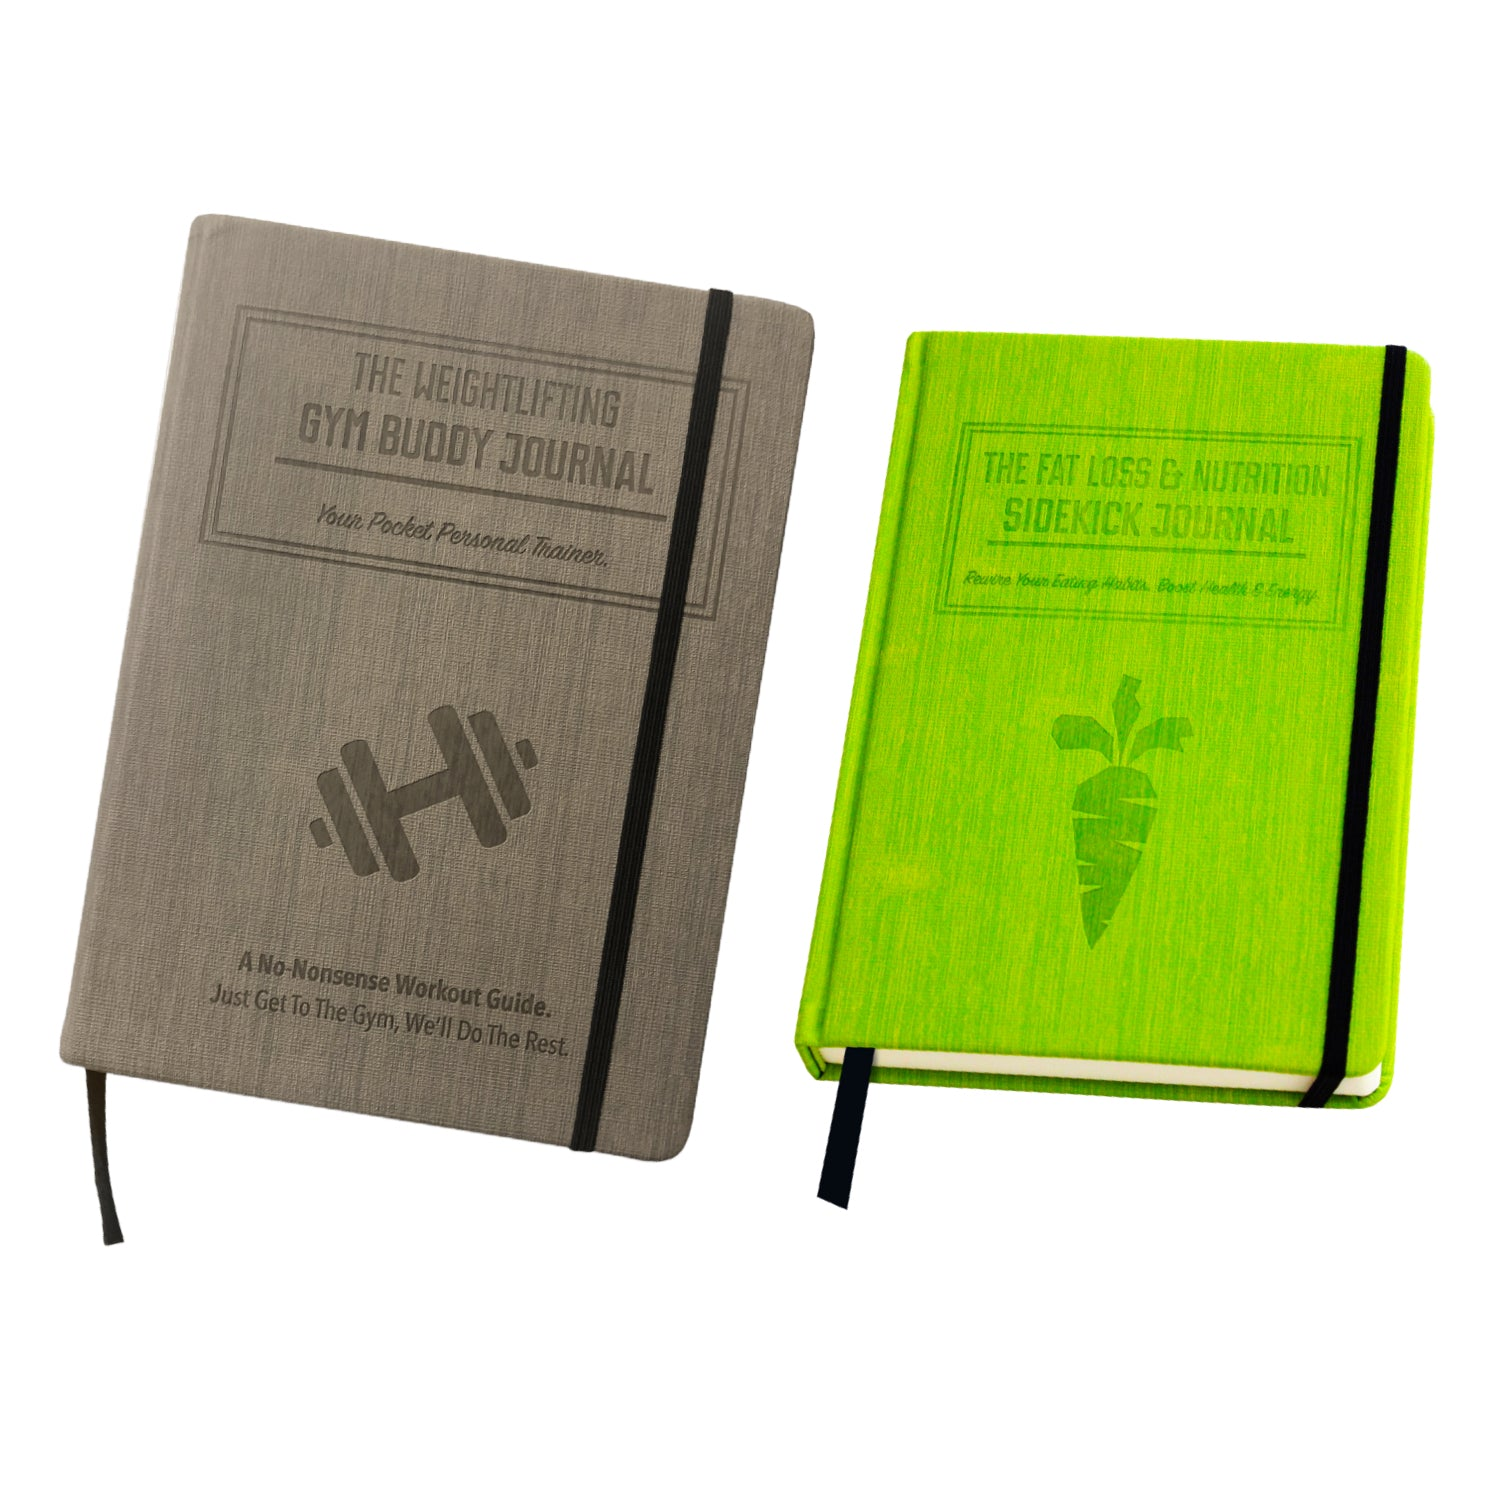 Bundle: The Weightlifting Gym Buddy Journal (Volume 1) + The Nutrition Sidekick Journal